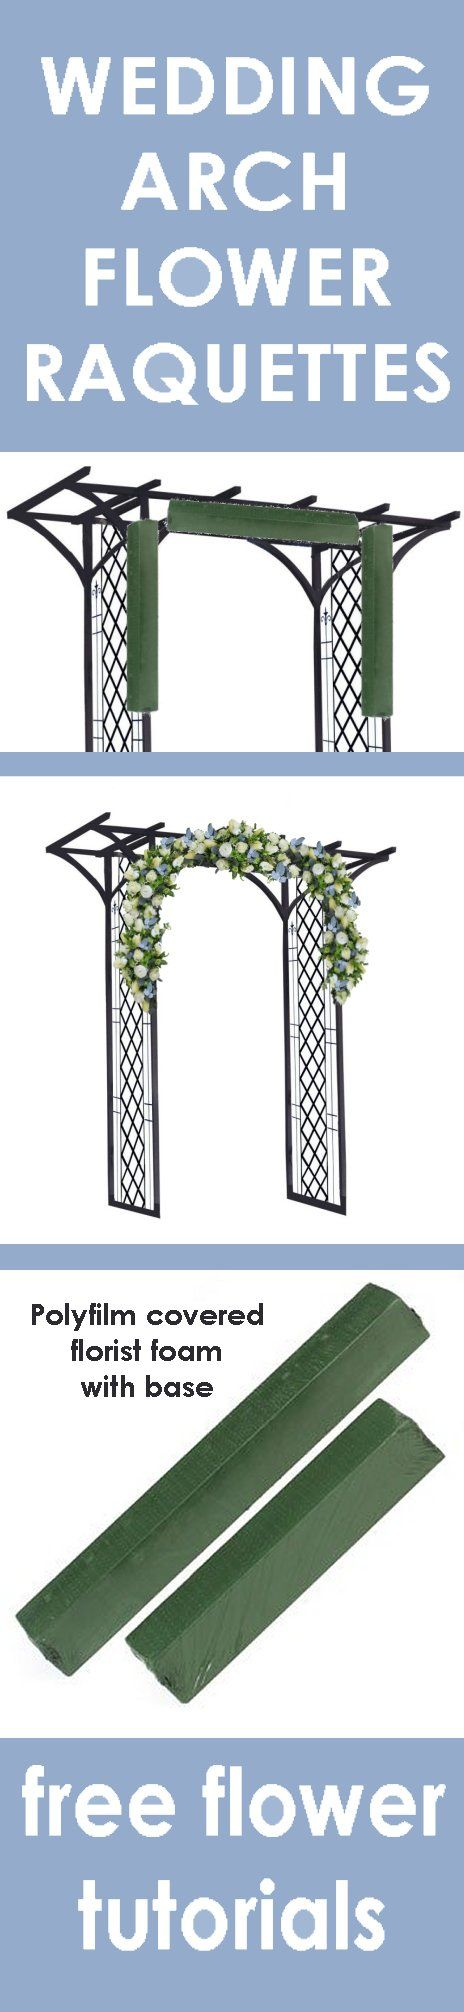 Wedding arch flowers foam cages for arch flowers event planning wedding arch flowers foam cages for arch flowers event planning decor pinterest arch flowers and wedding junglespirit Image collections